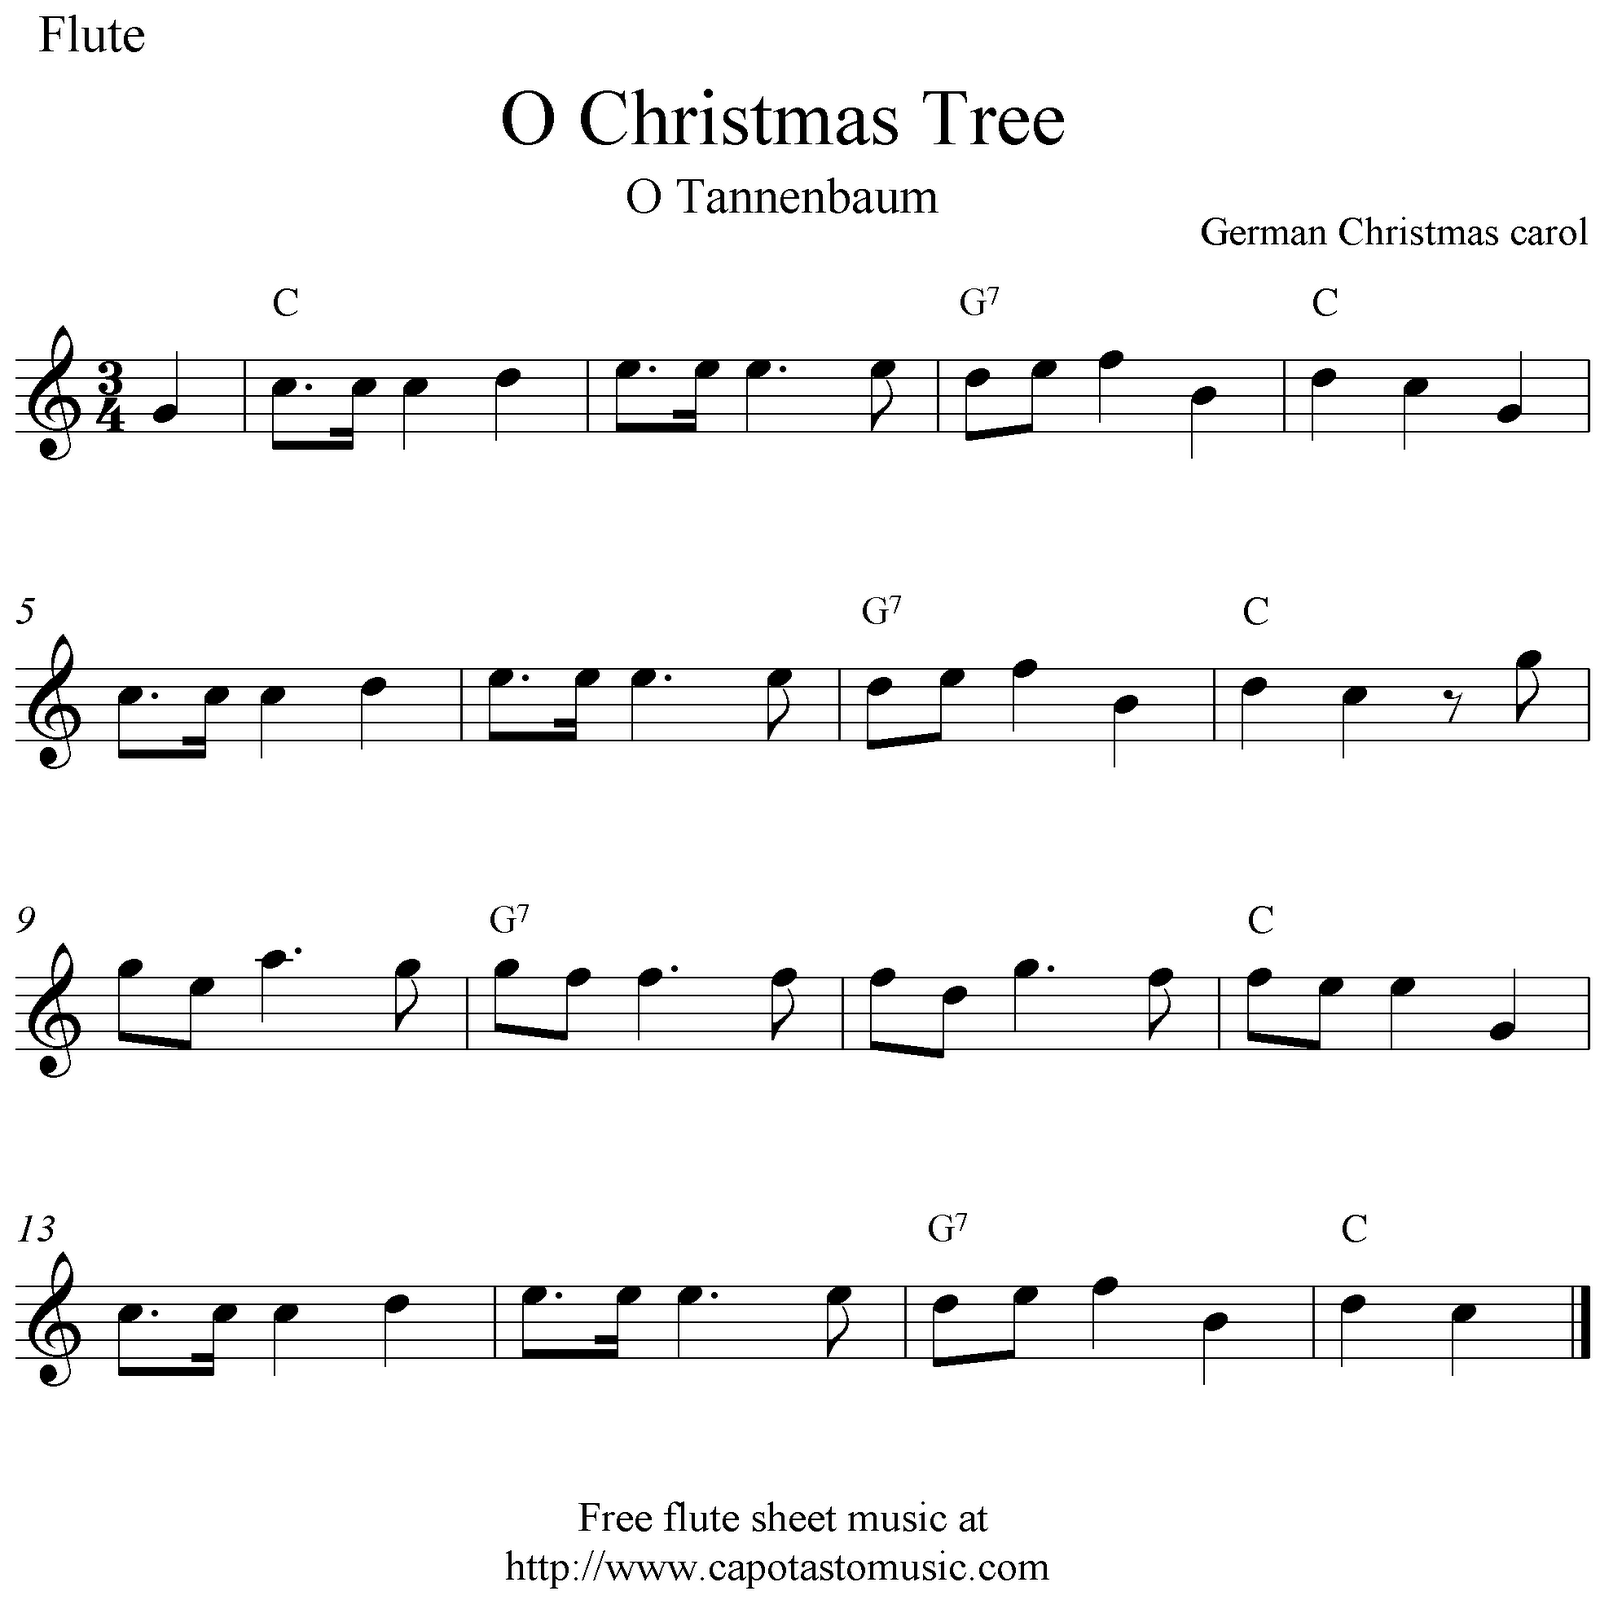 185 Best Images About Sheet Music On Pinterest: Flute Notes O Christmas Tree